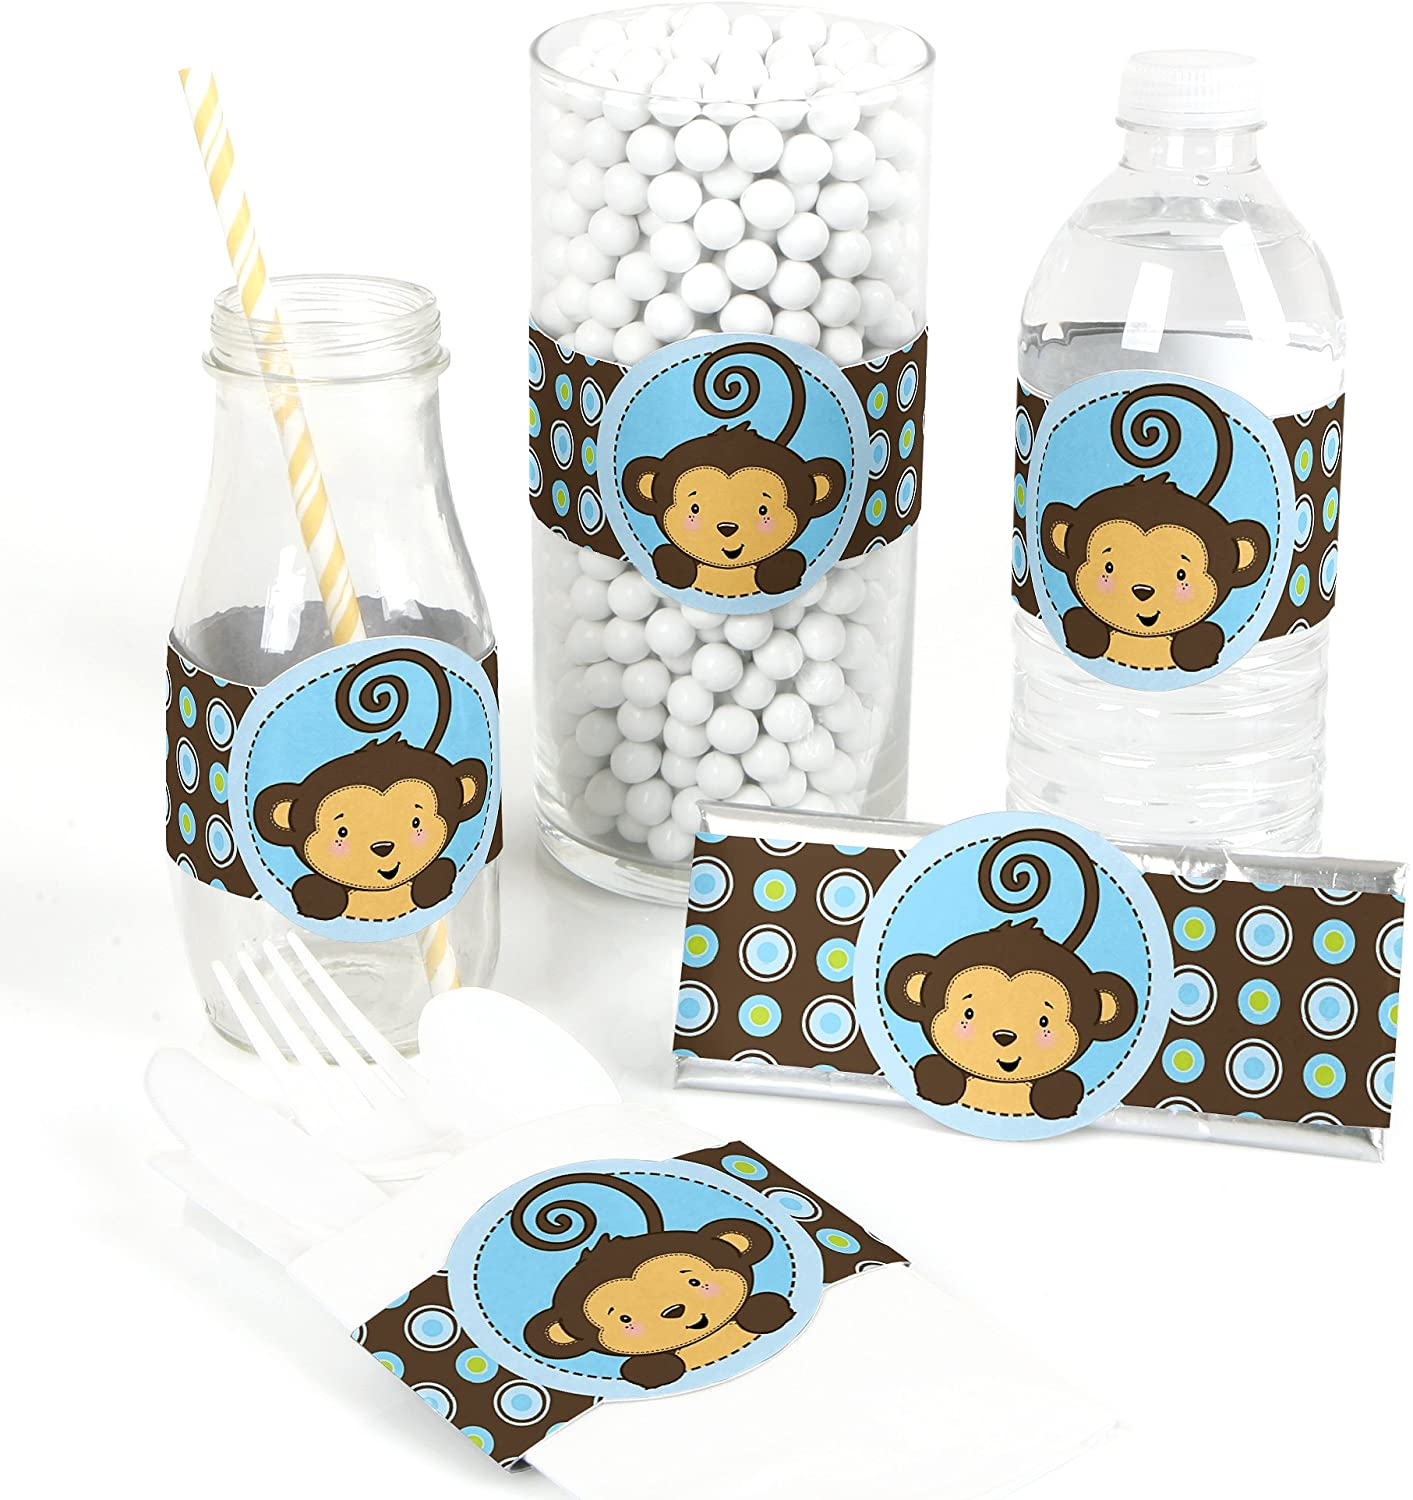 Blue Monkey Boy - DIY Party Supplies - Baby Shower or Birthday Party DIY Wrapper Favors & Decorations - Set of 15